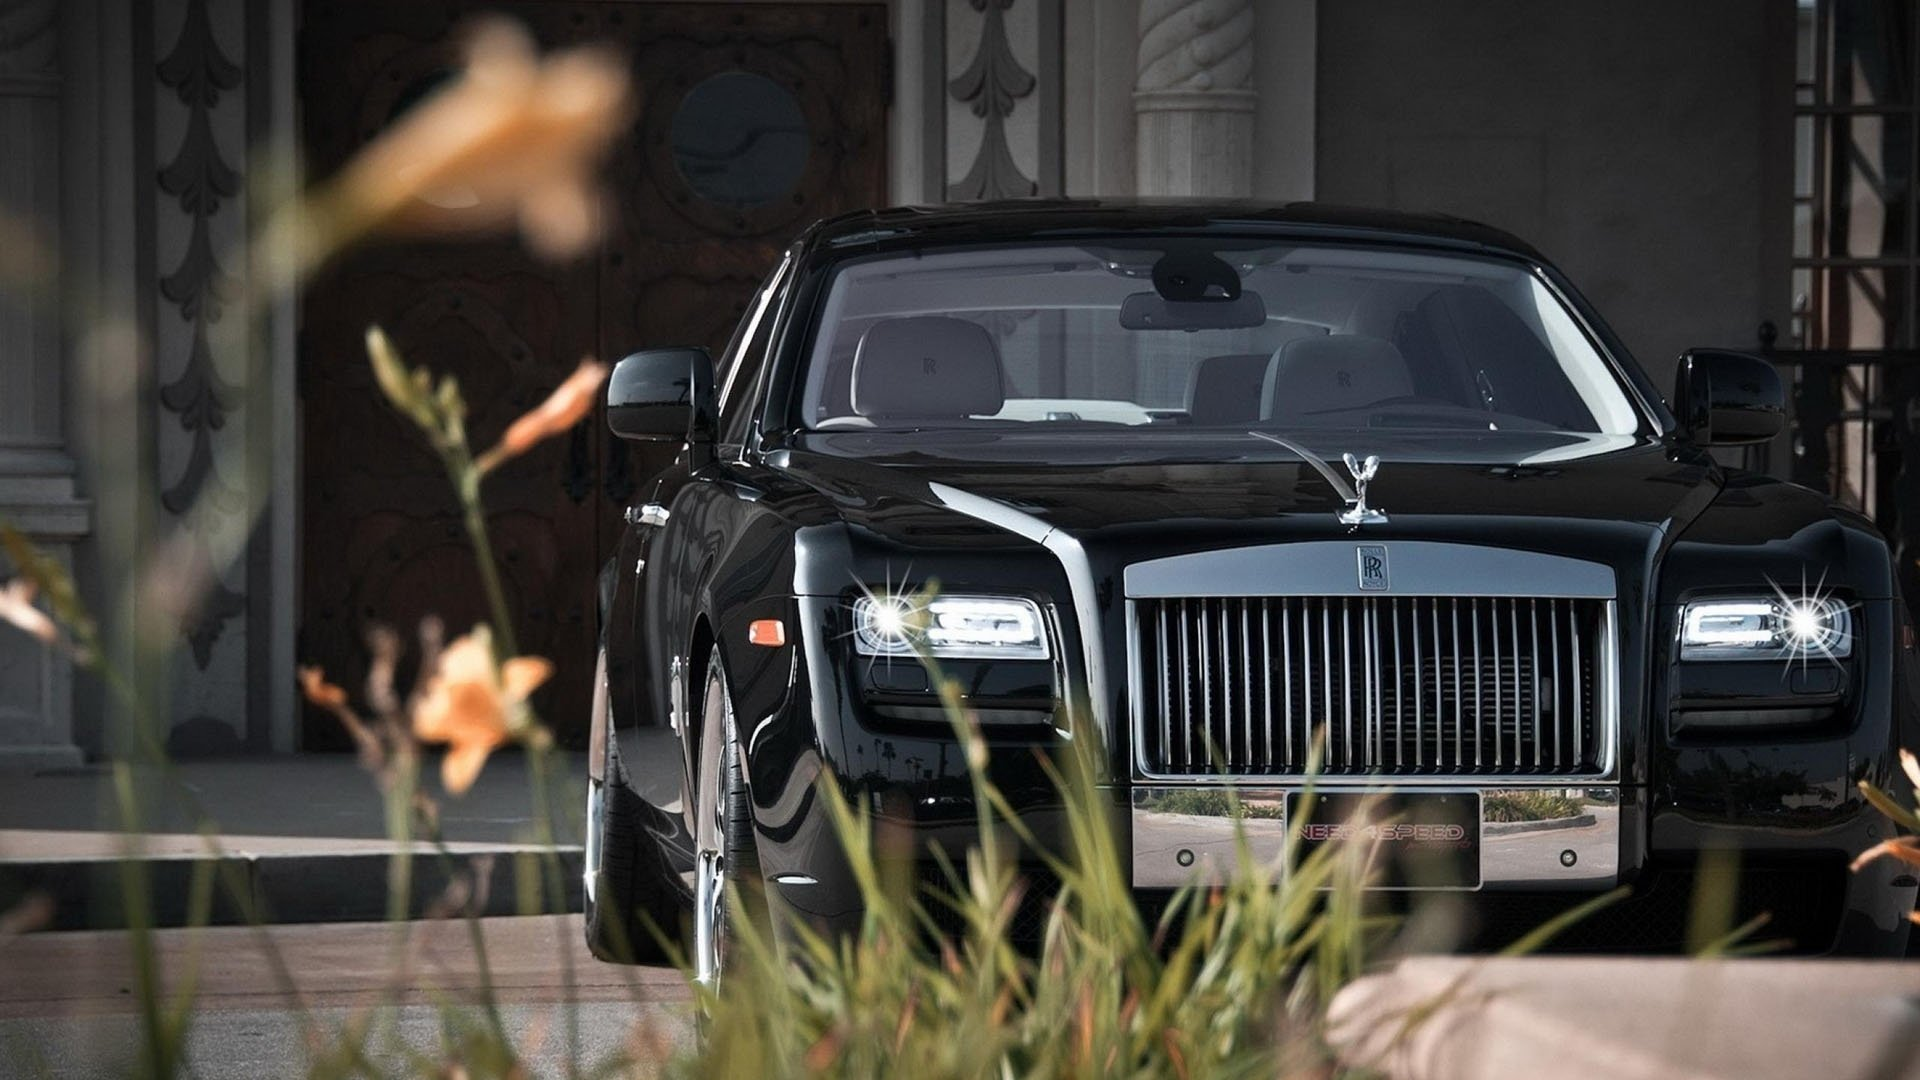 306 Rolls Royce Hd Wallpapers Background Images Wallpaper Abyss